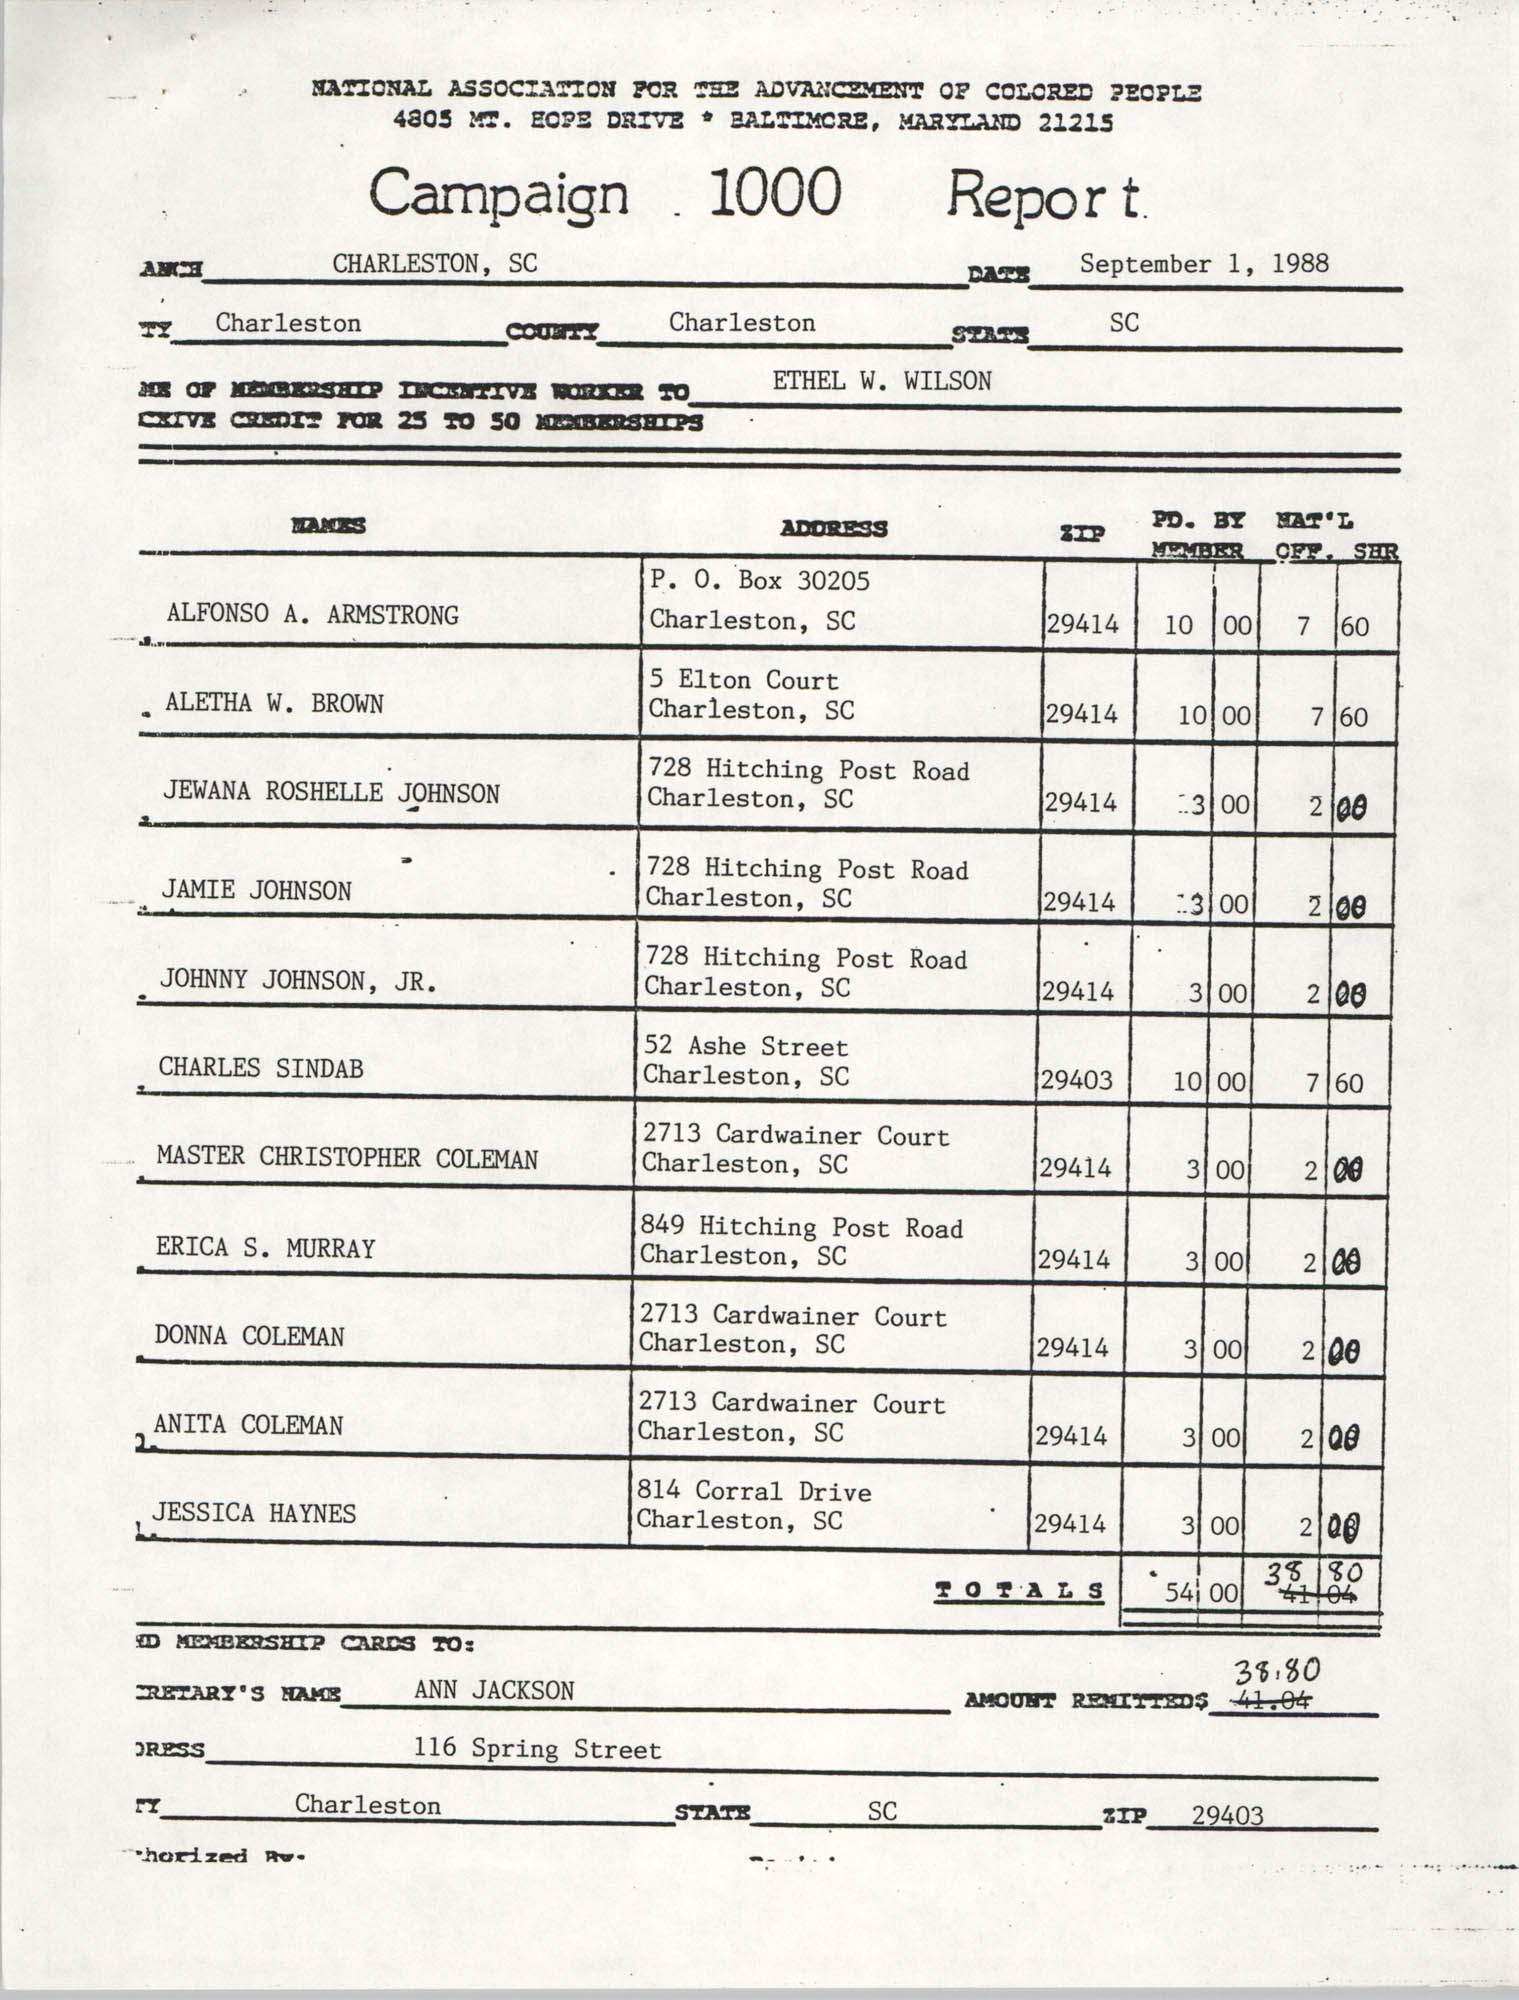 Campaign 1000 Report, Ethel W. Wilson, Charleston Branch of the NAACP, September 1, 1988